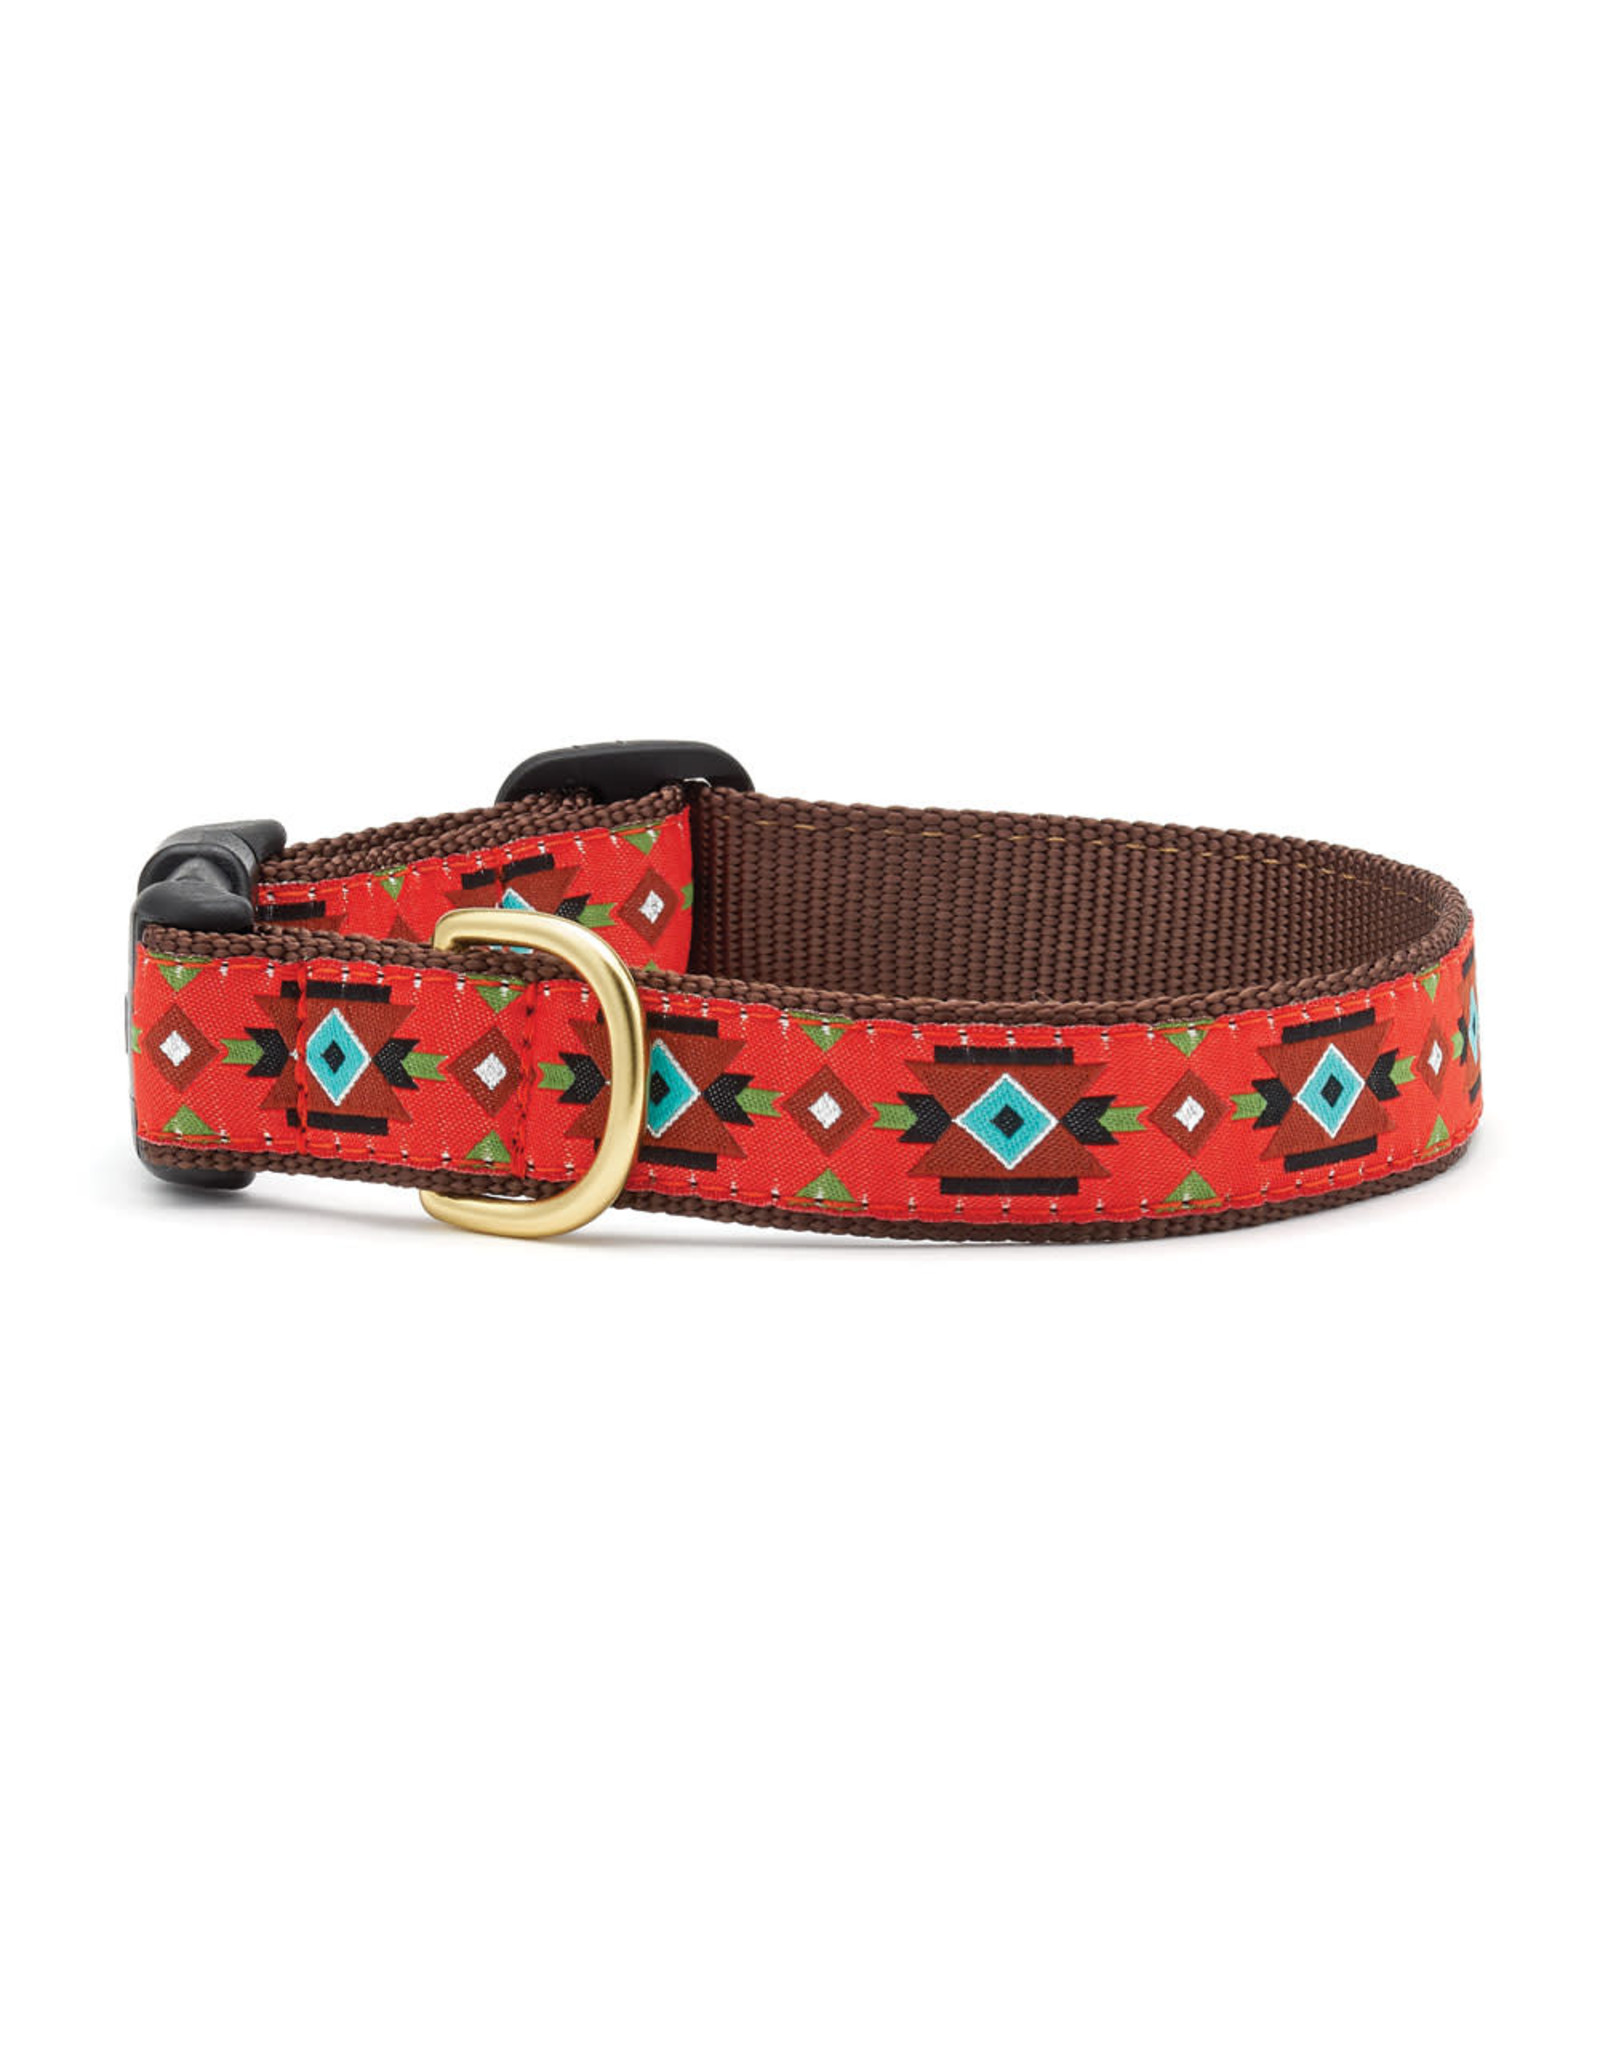 Up Country Sedona Collar Collar: Wide, L